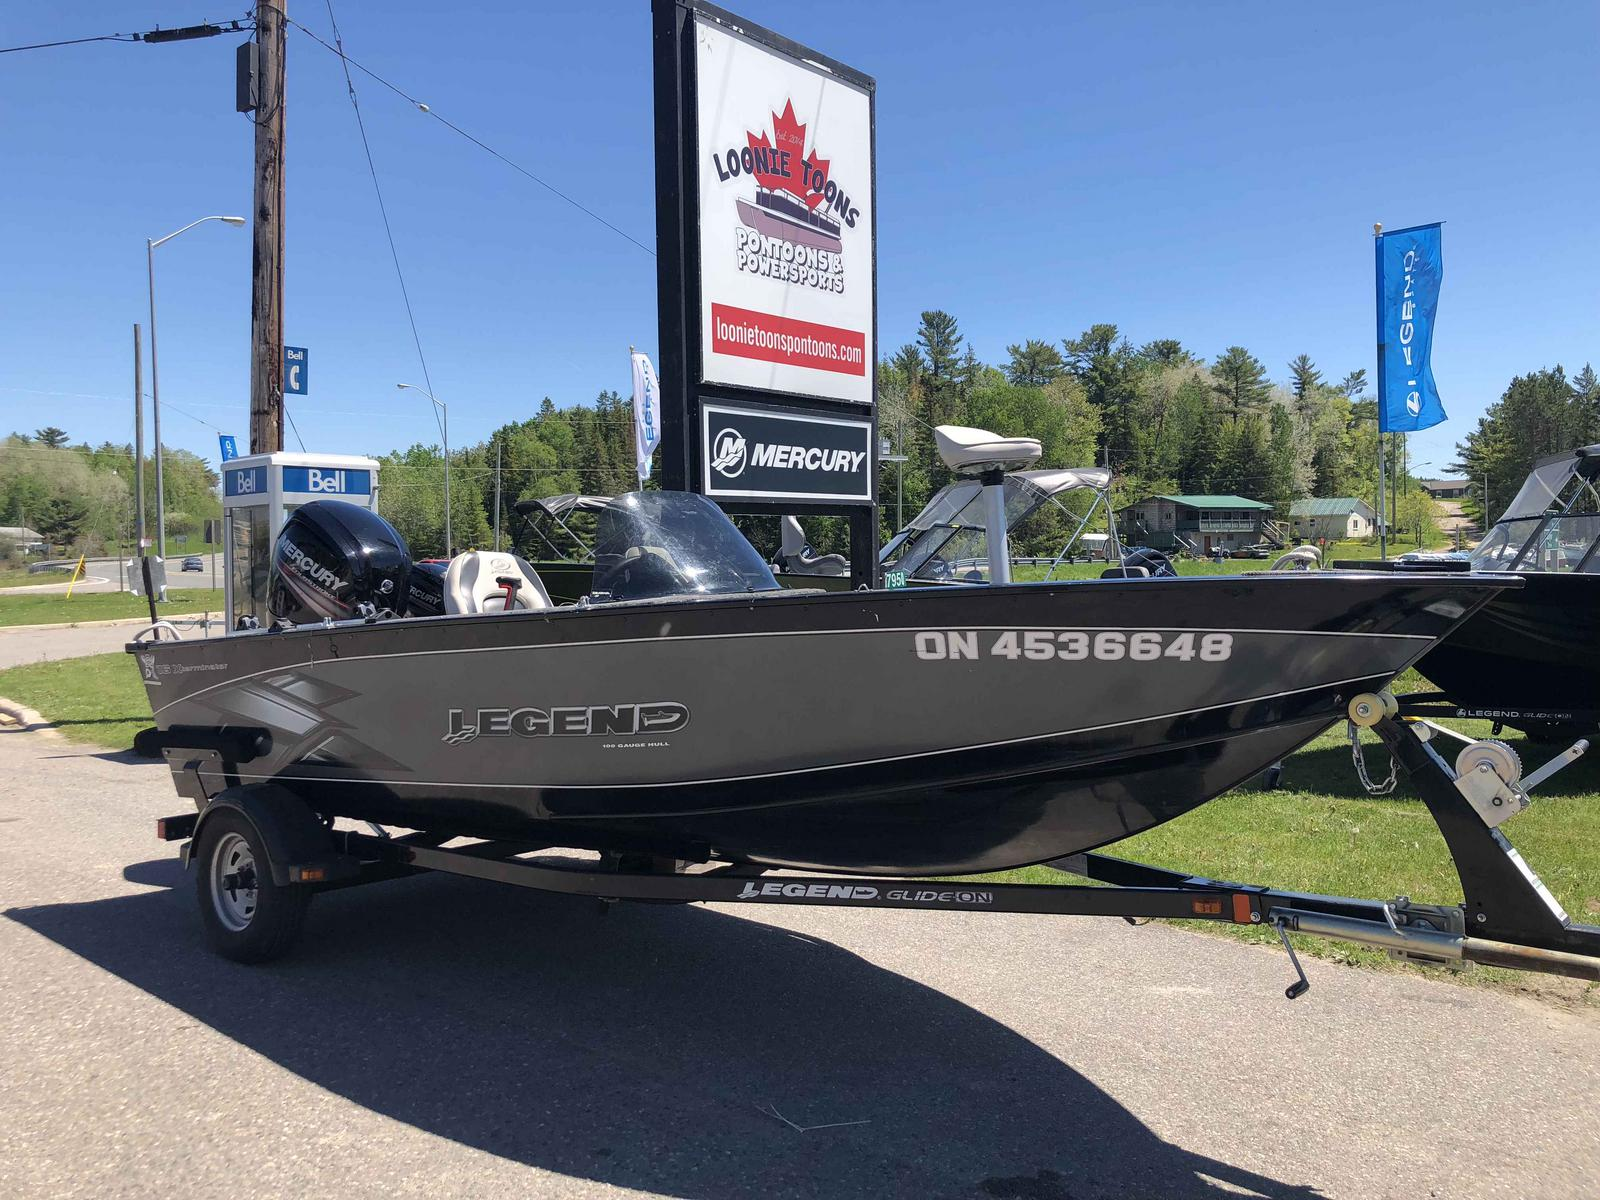 2014 Legend Xterminator 16 For Sale In Desbarats On Loonie Toons Pontoons Powersports Desbarats On 705 782 6826